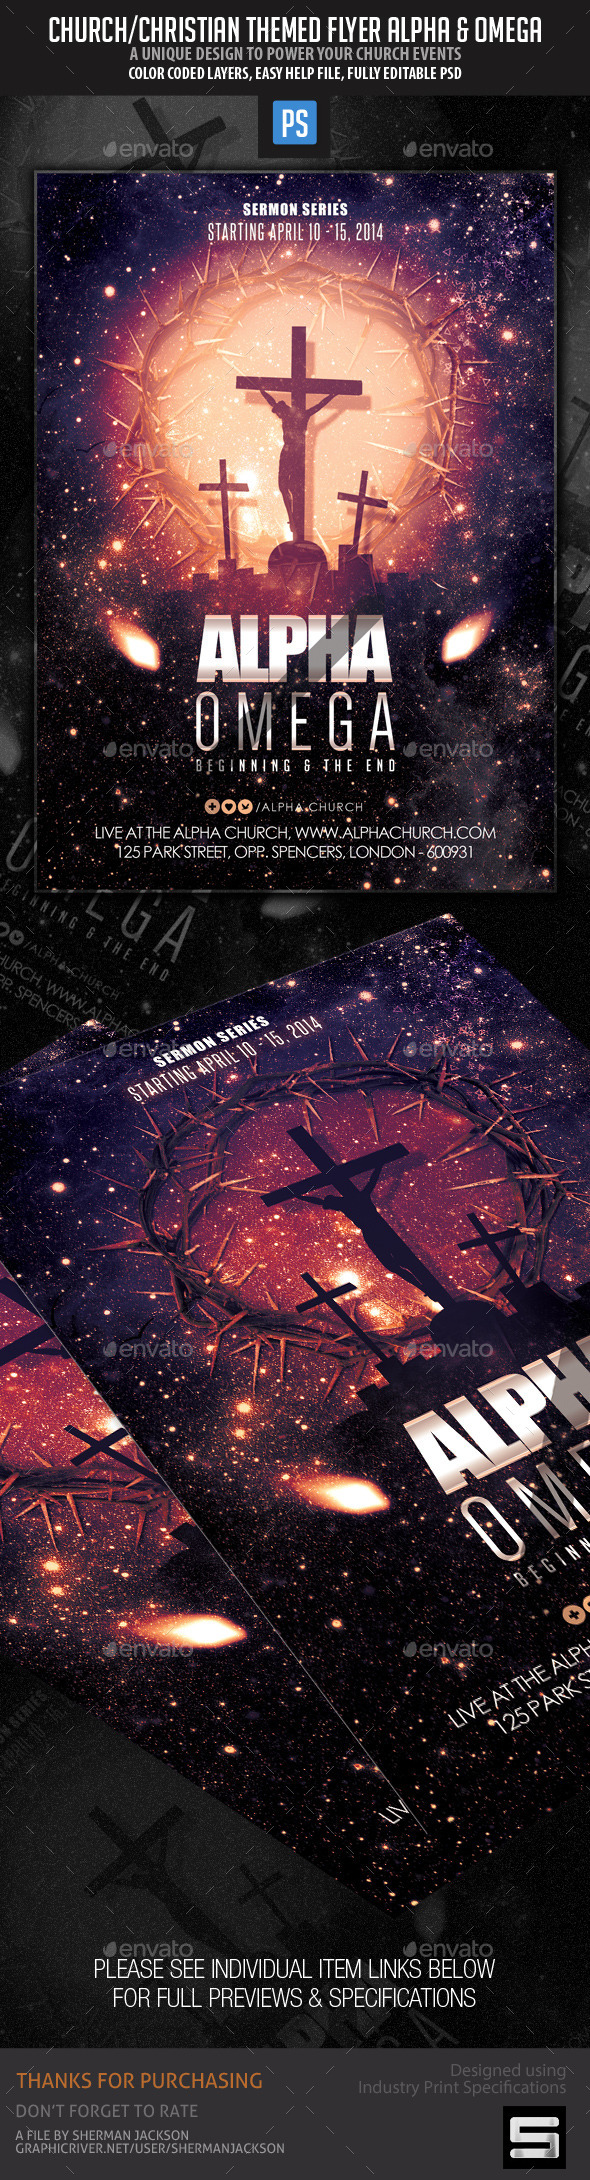 GraphicRiver Church Themed Flyer Alpha & Omega 10496256